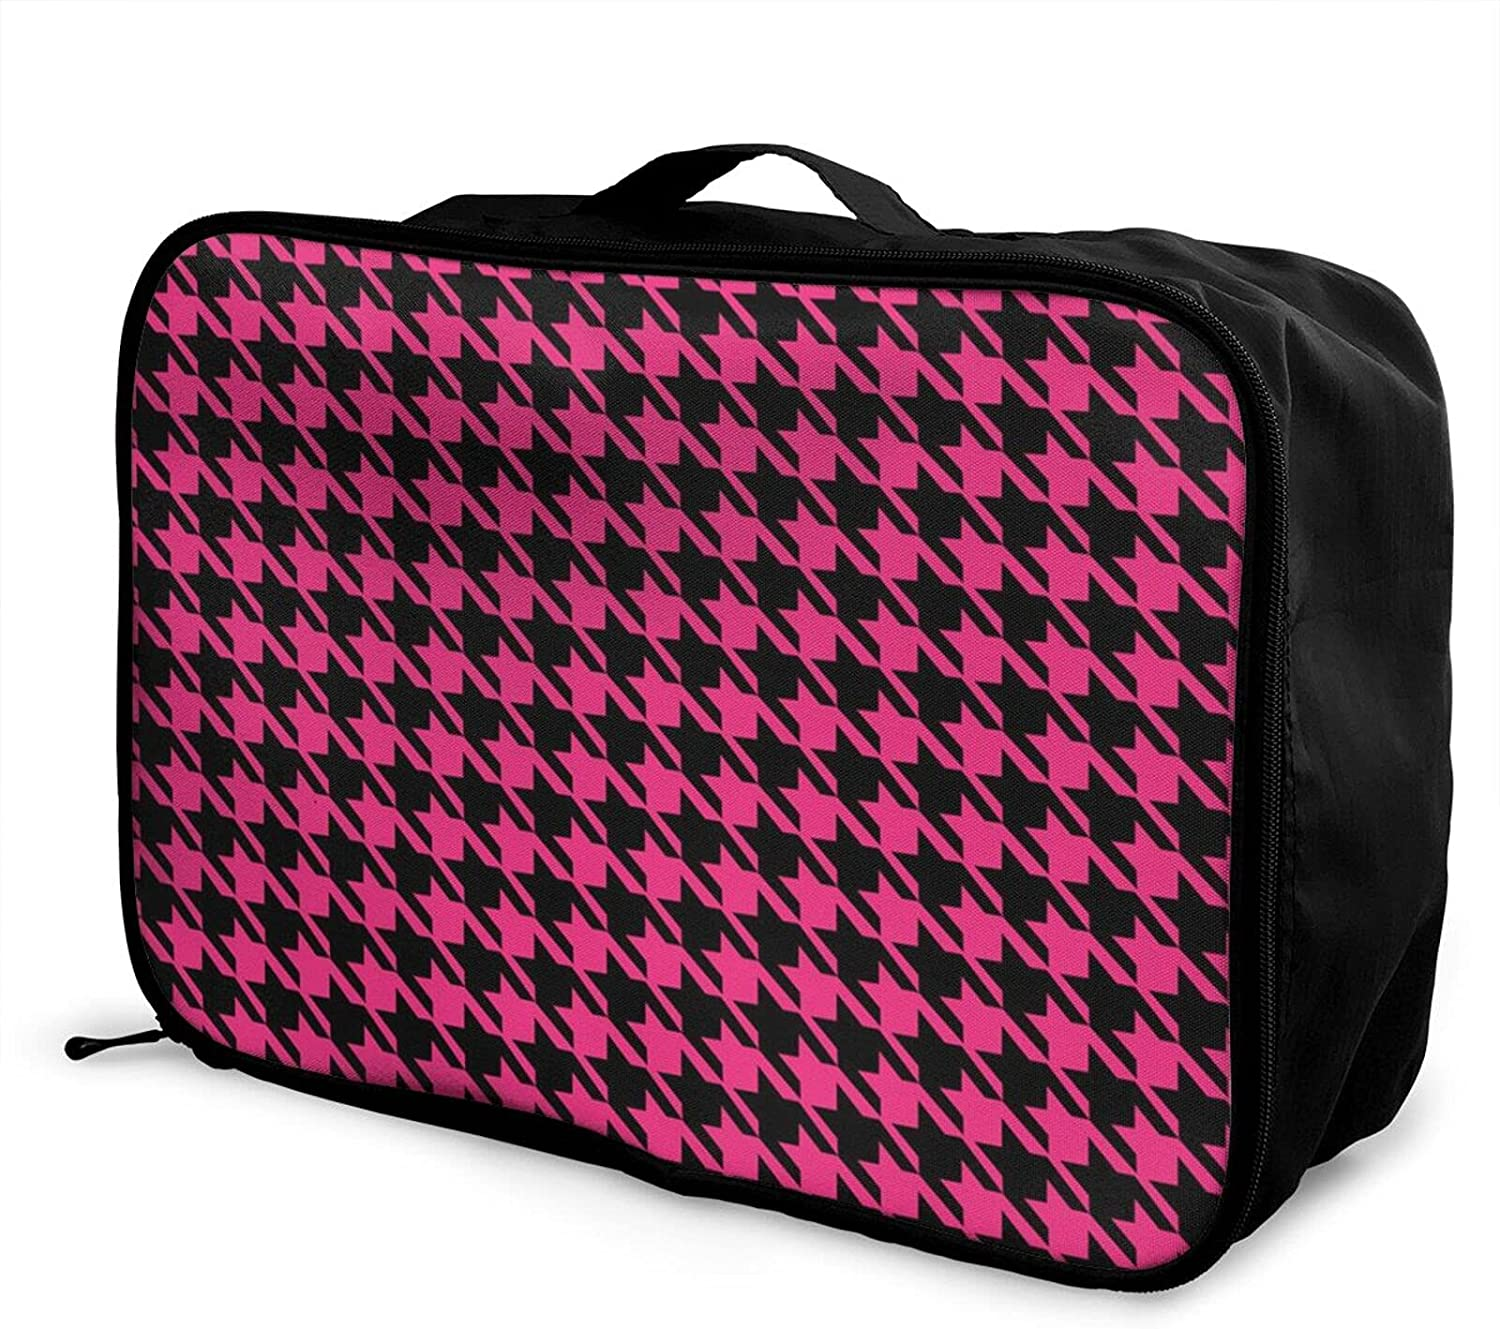 Foldable Travel Bag Tote Houndstooth Plaid Excellence Pink Lattice NEW Carry-On